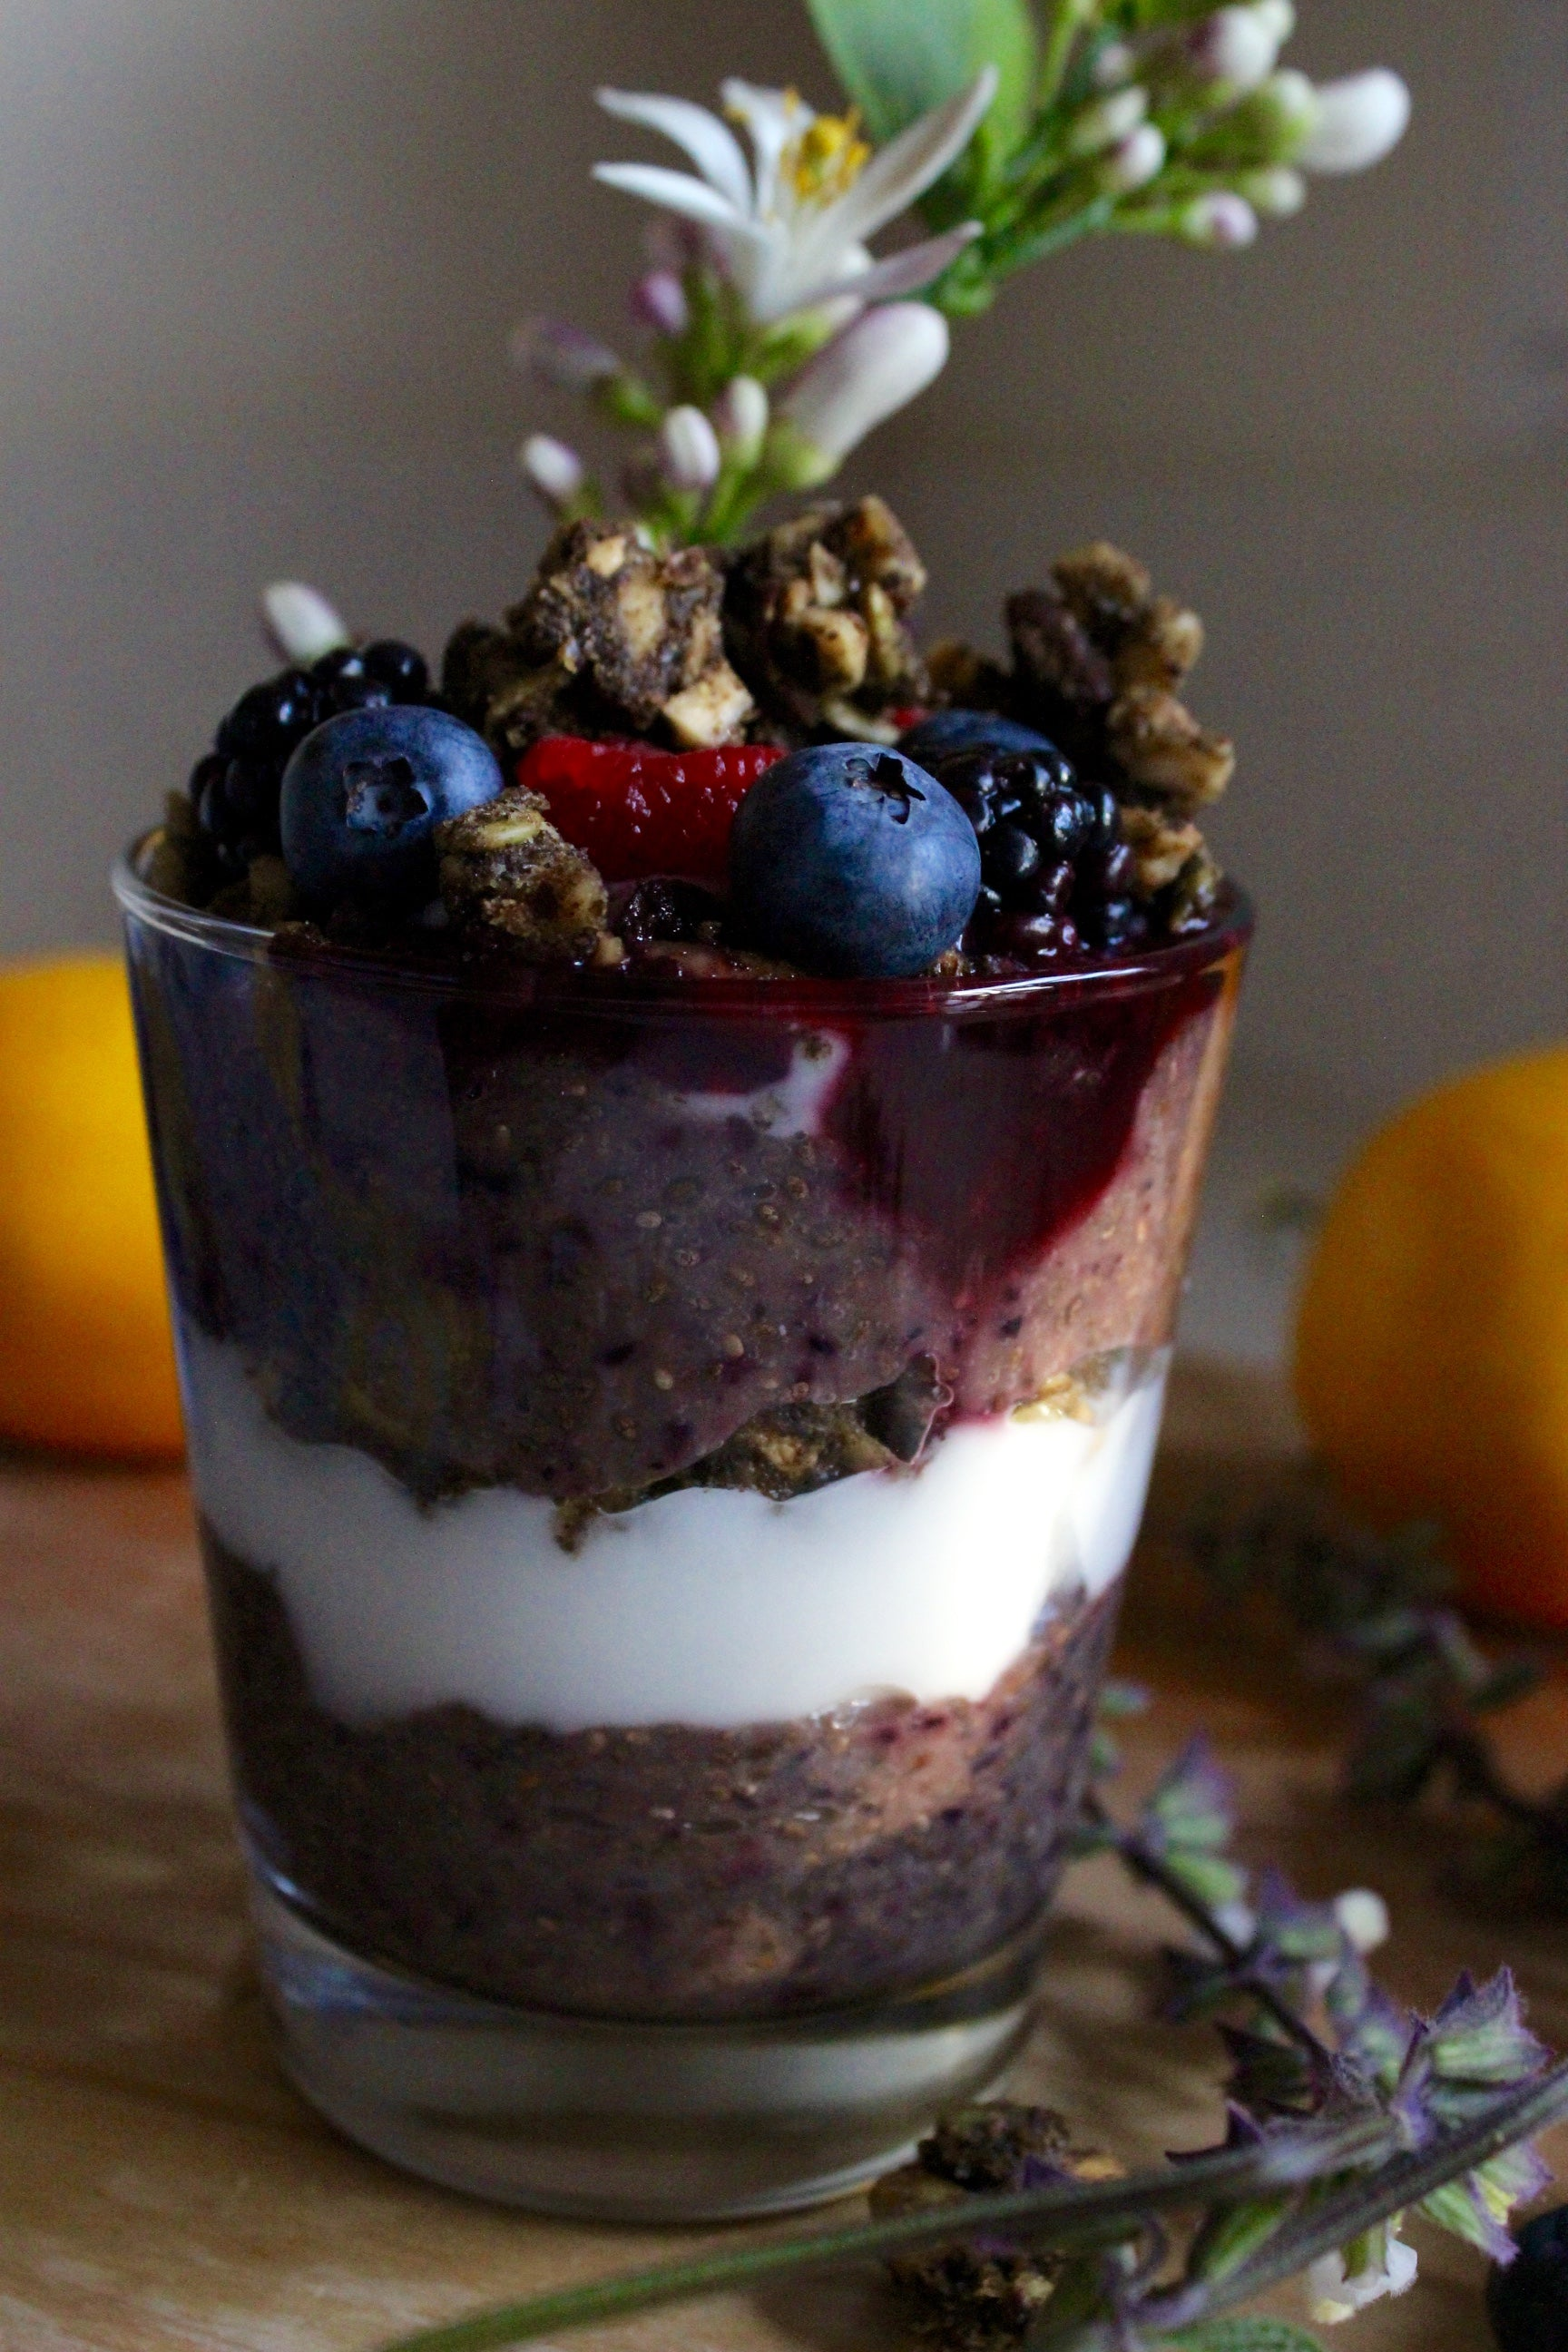 Blueberry Parfait with Paleo Granola